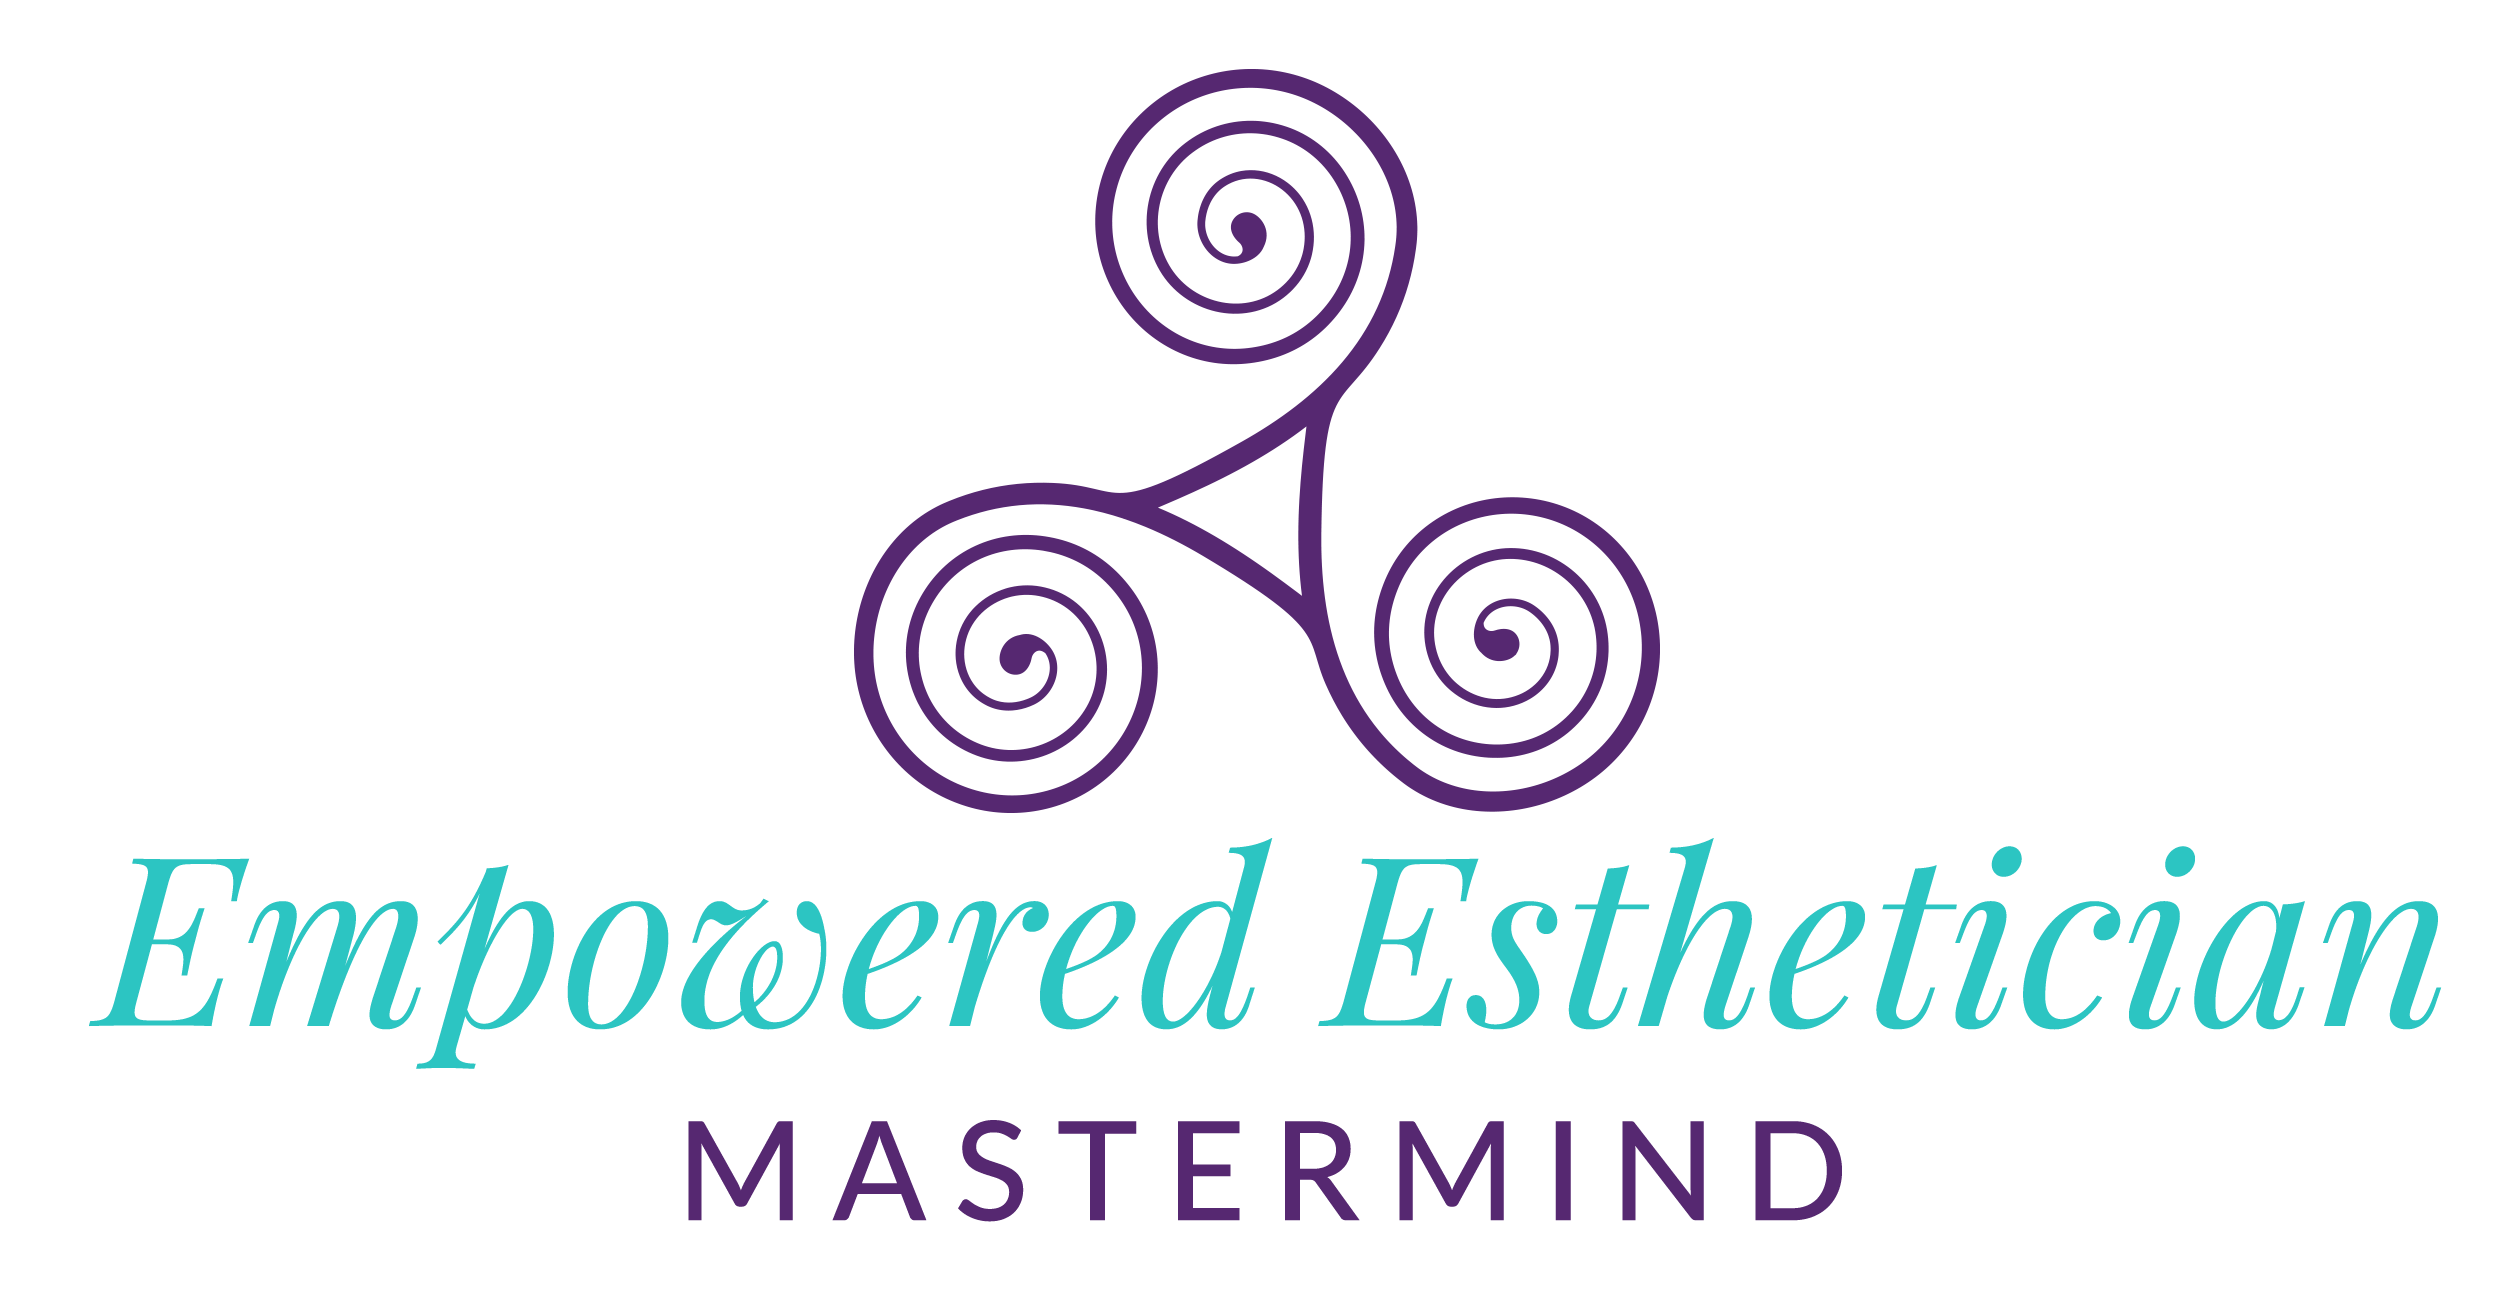 Empowered Esthetician Mastermind